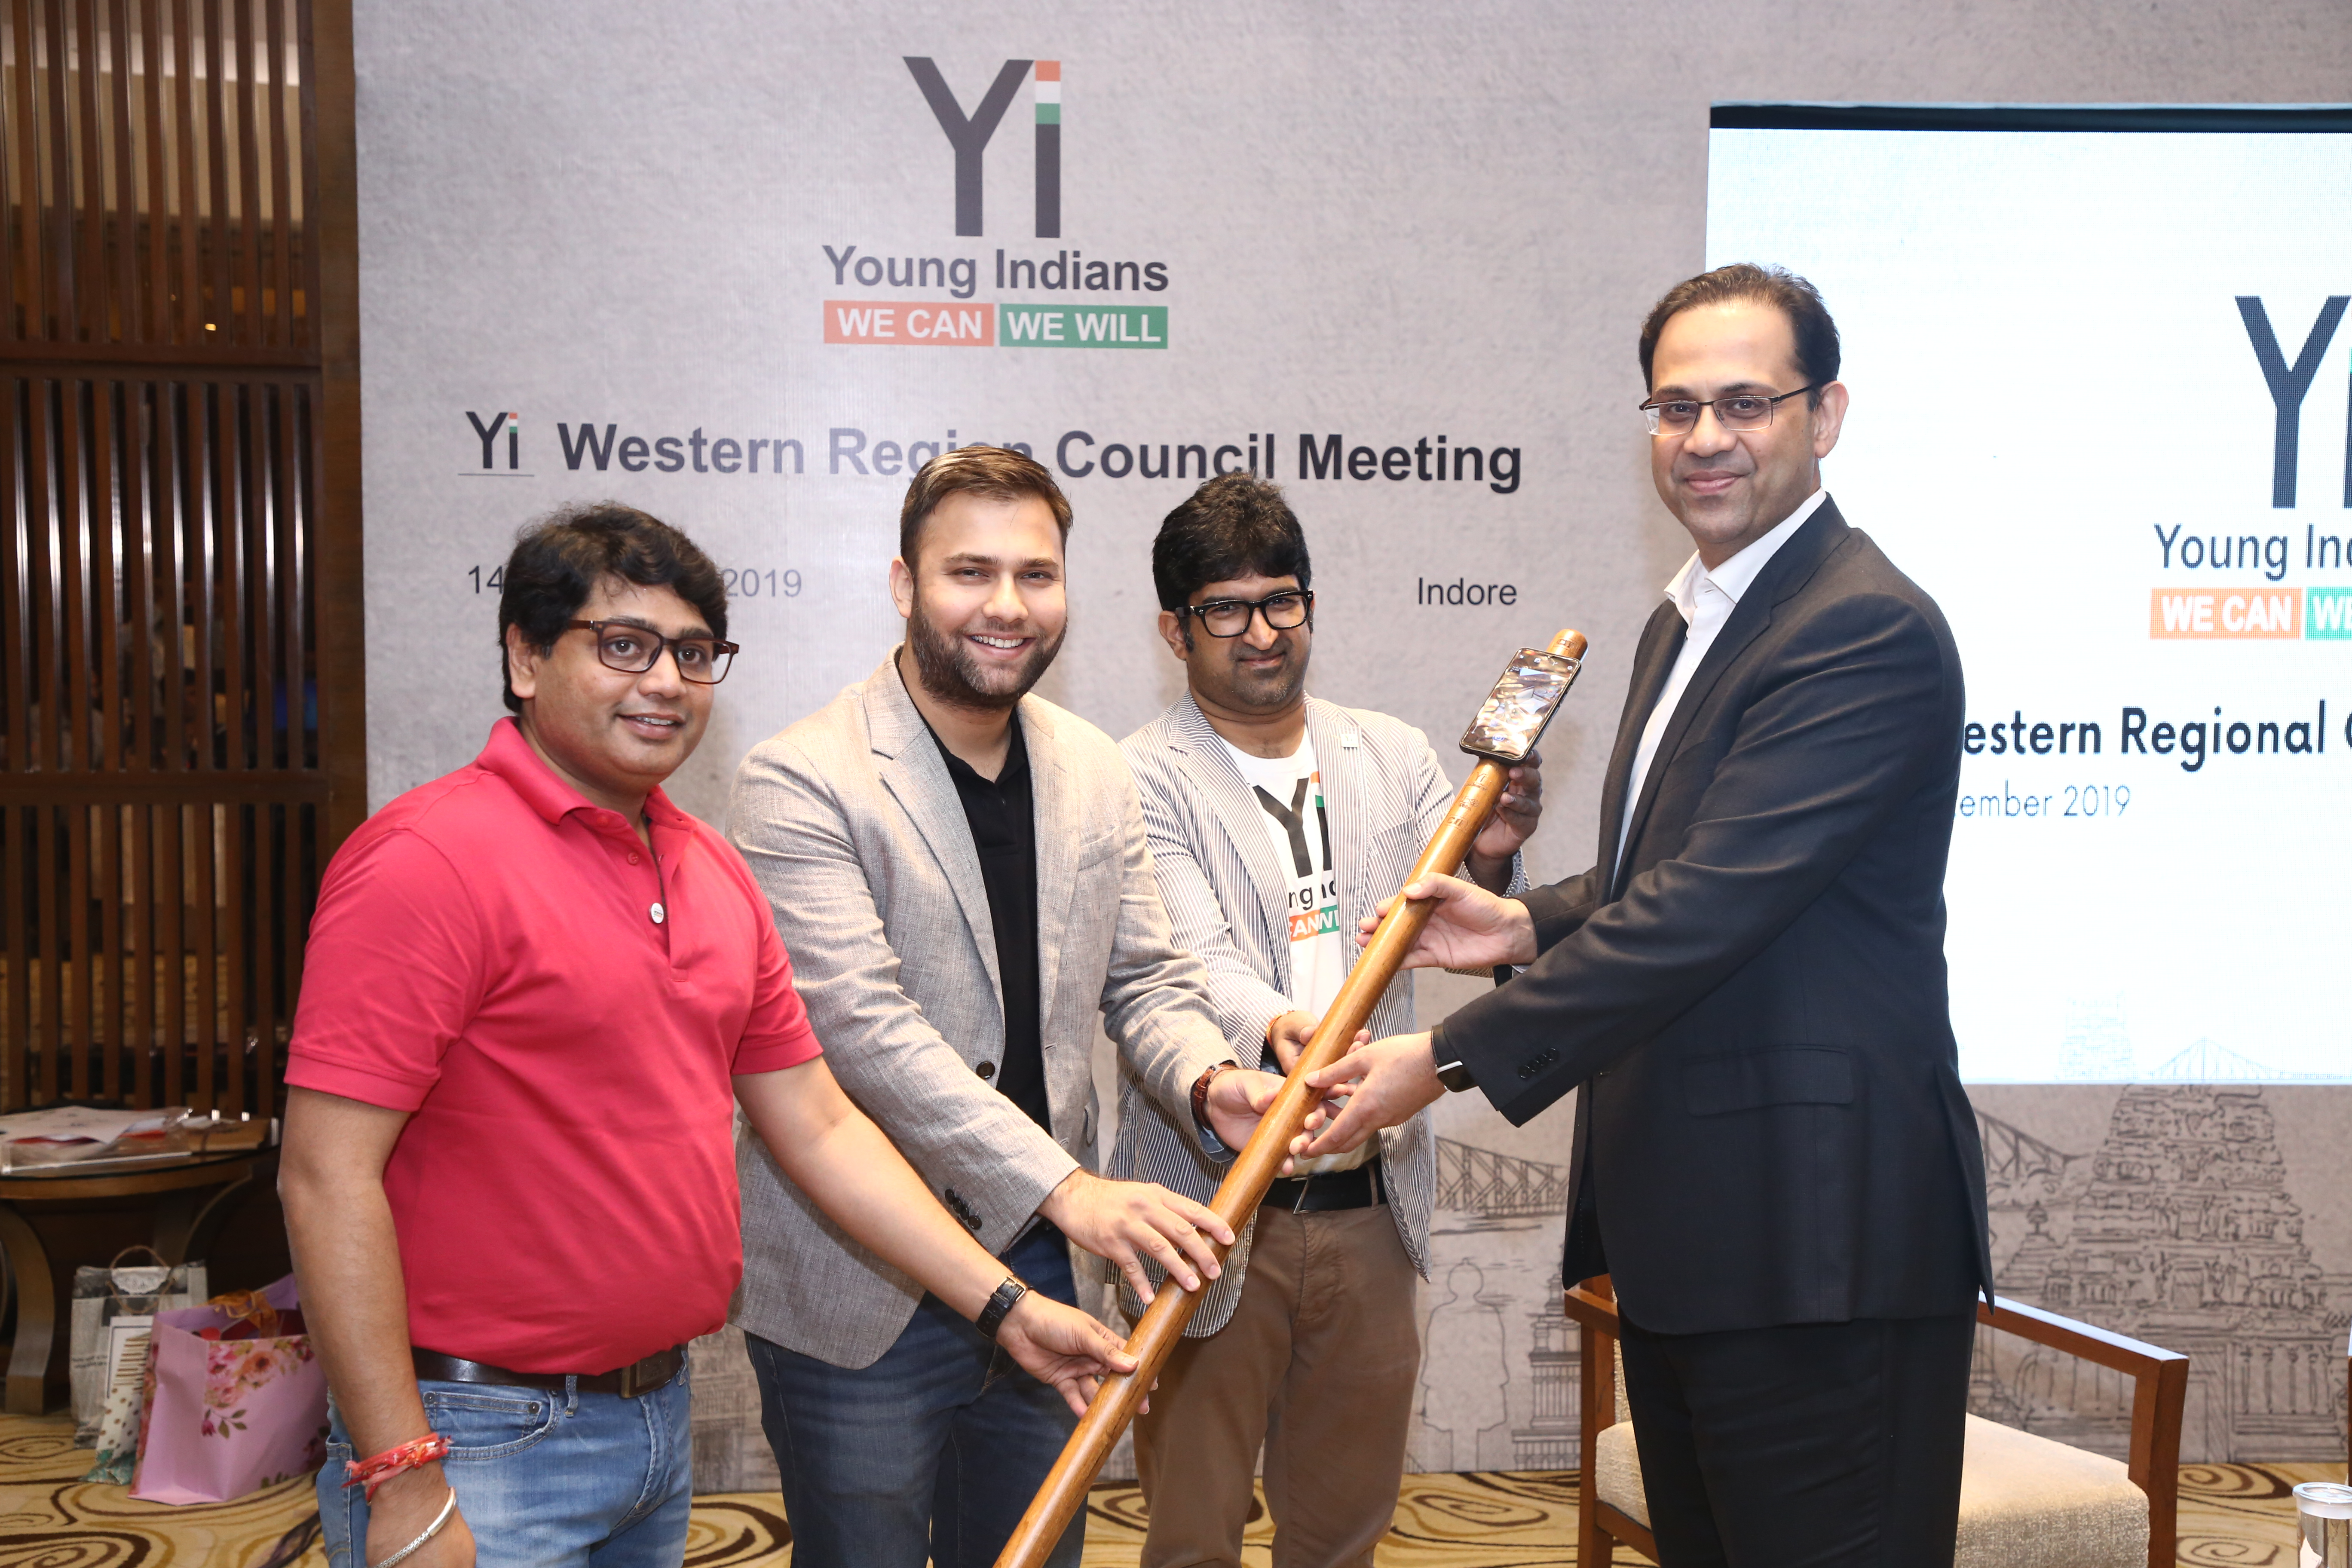 Yi Western Regional Council Meeting,Indore